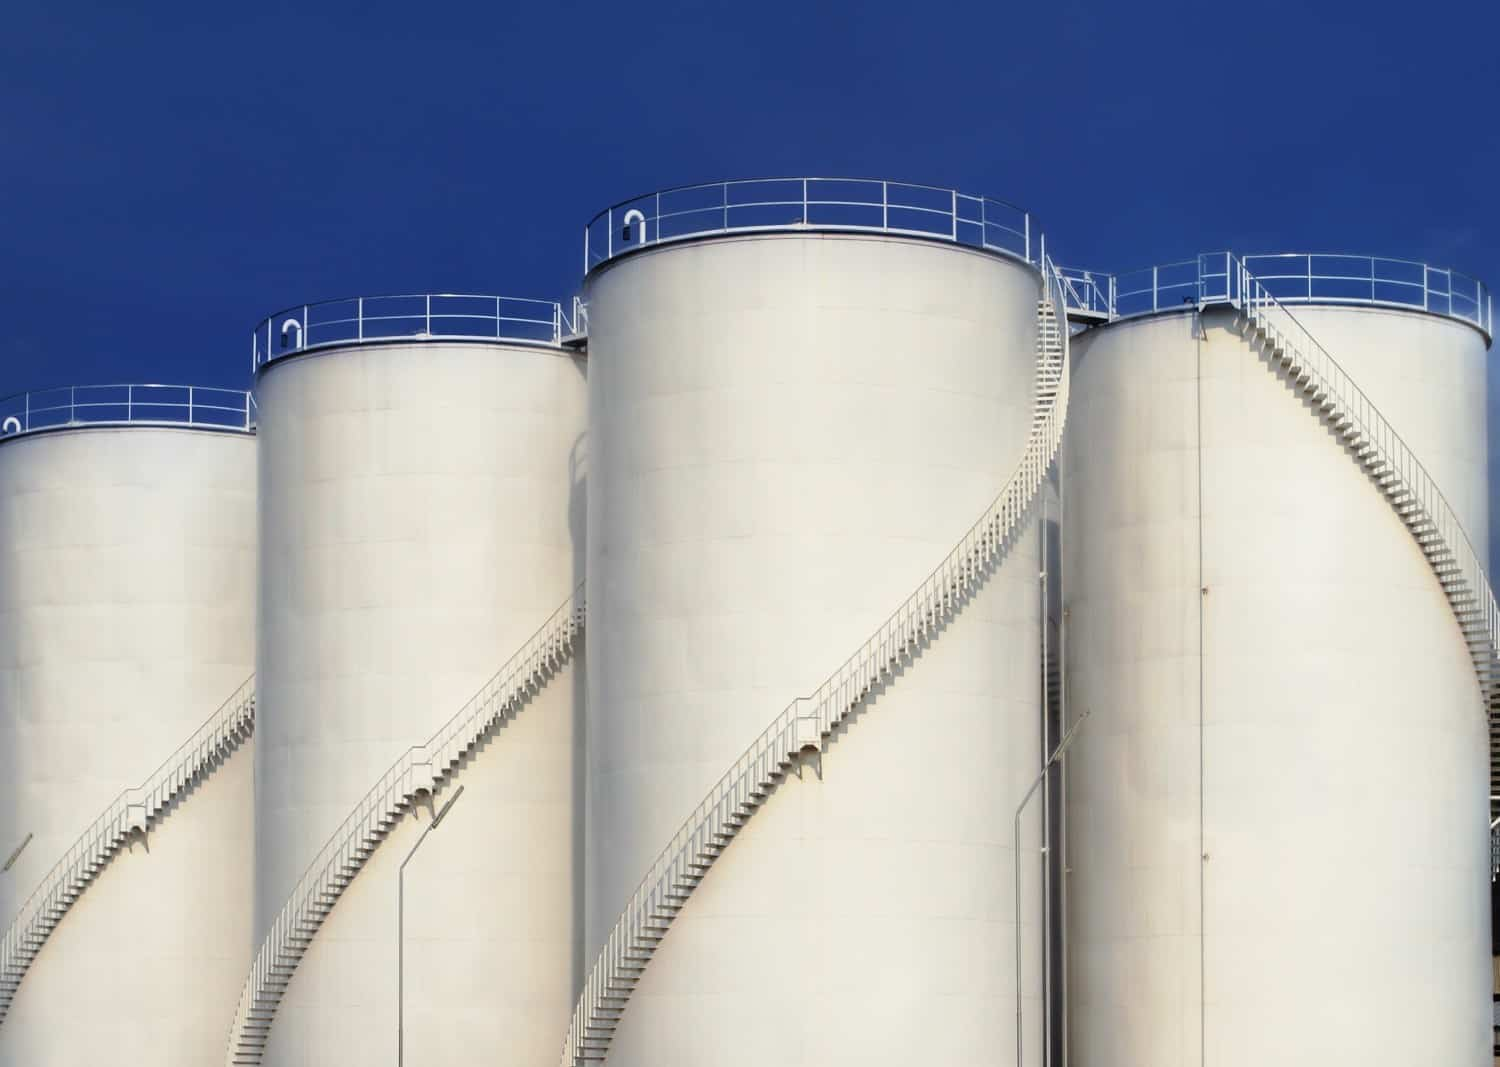 EPIKURE 3200 series